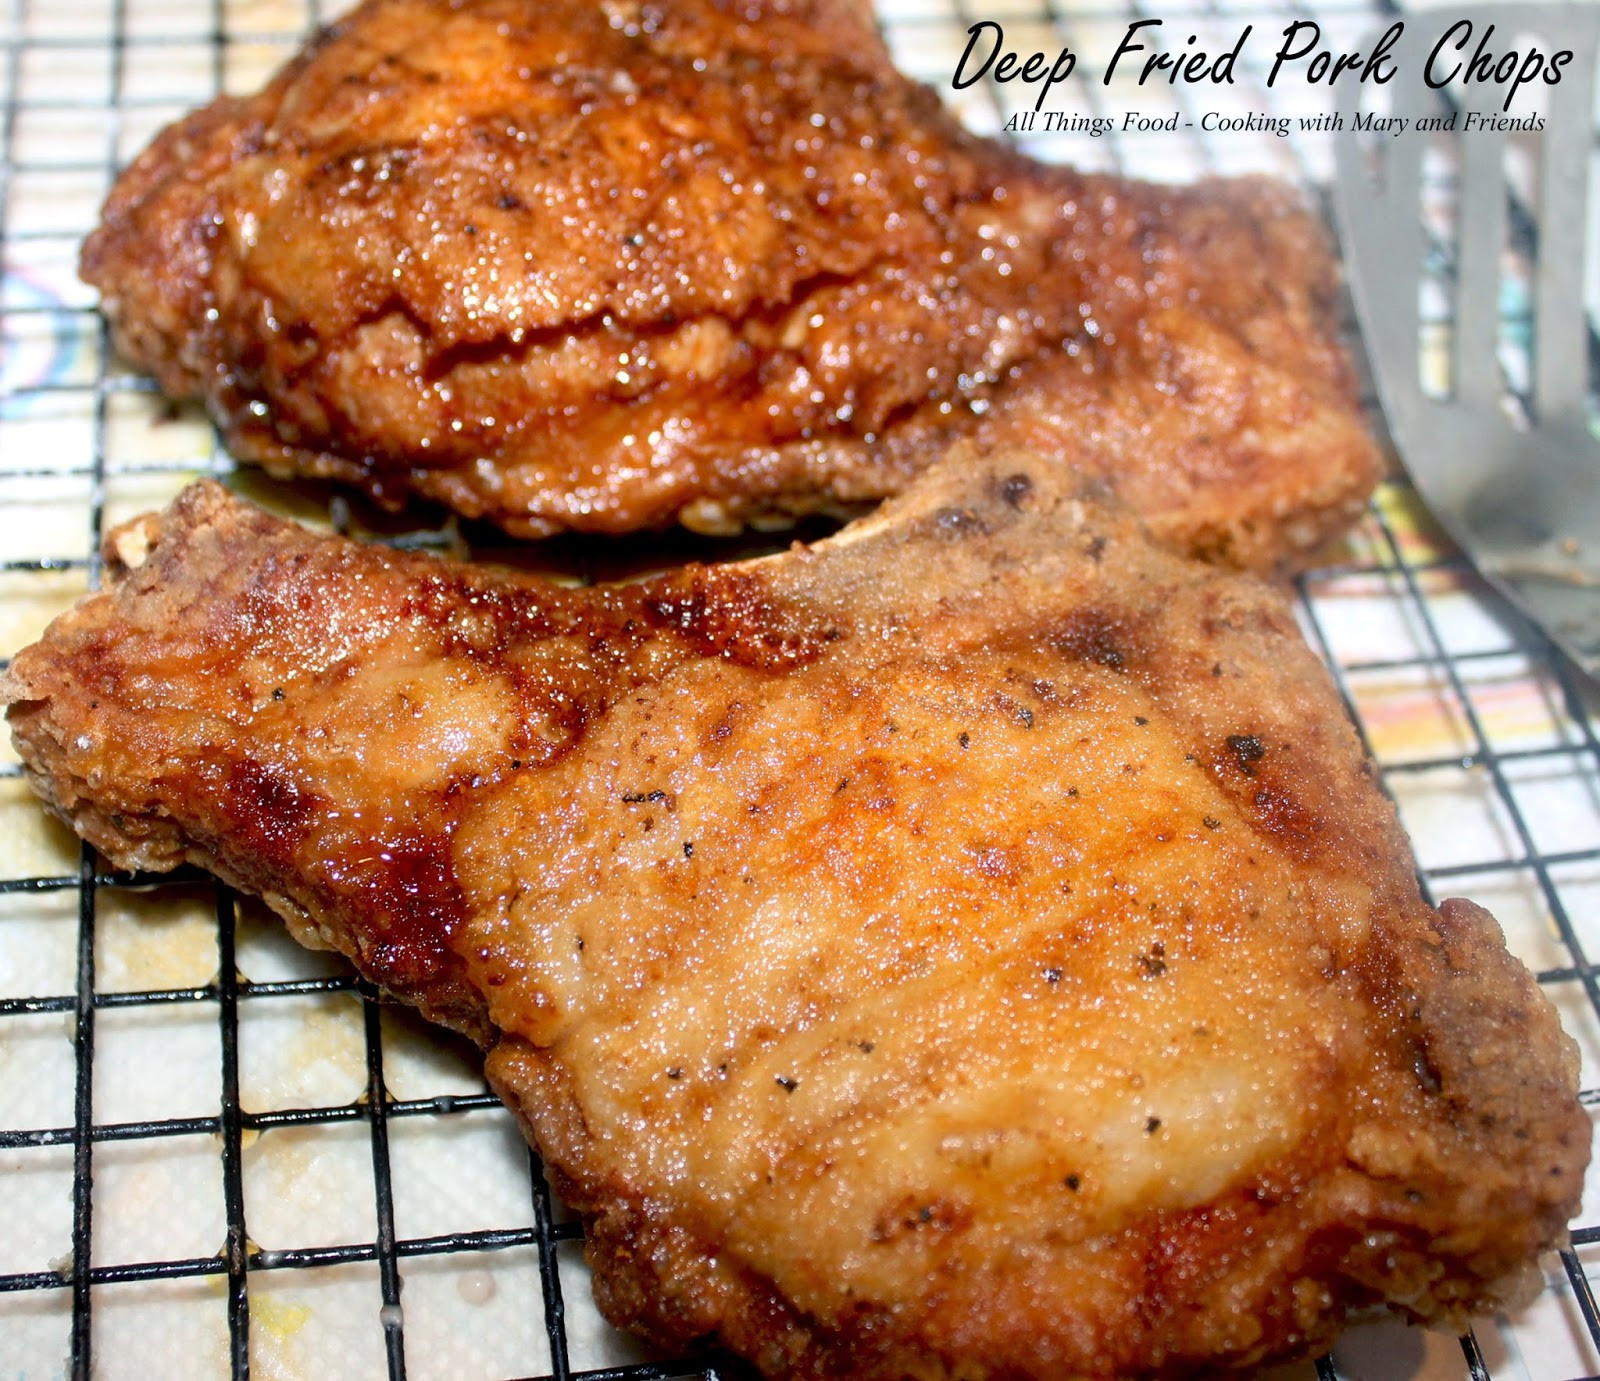 How To Fry Pork Chops Without Flour  Cooking With Mary and Friends Deep Fried Pork Chops